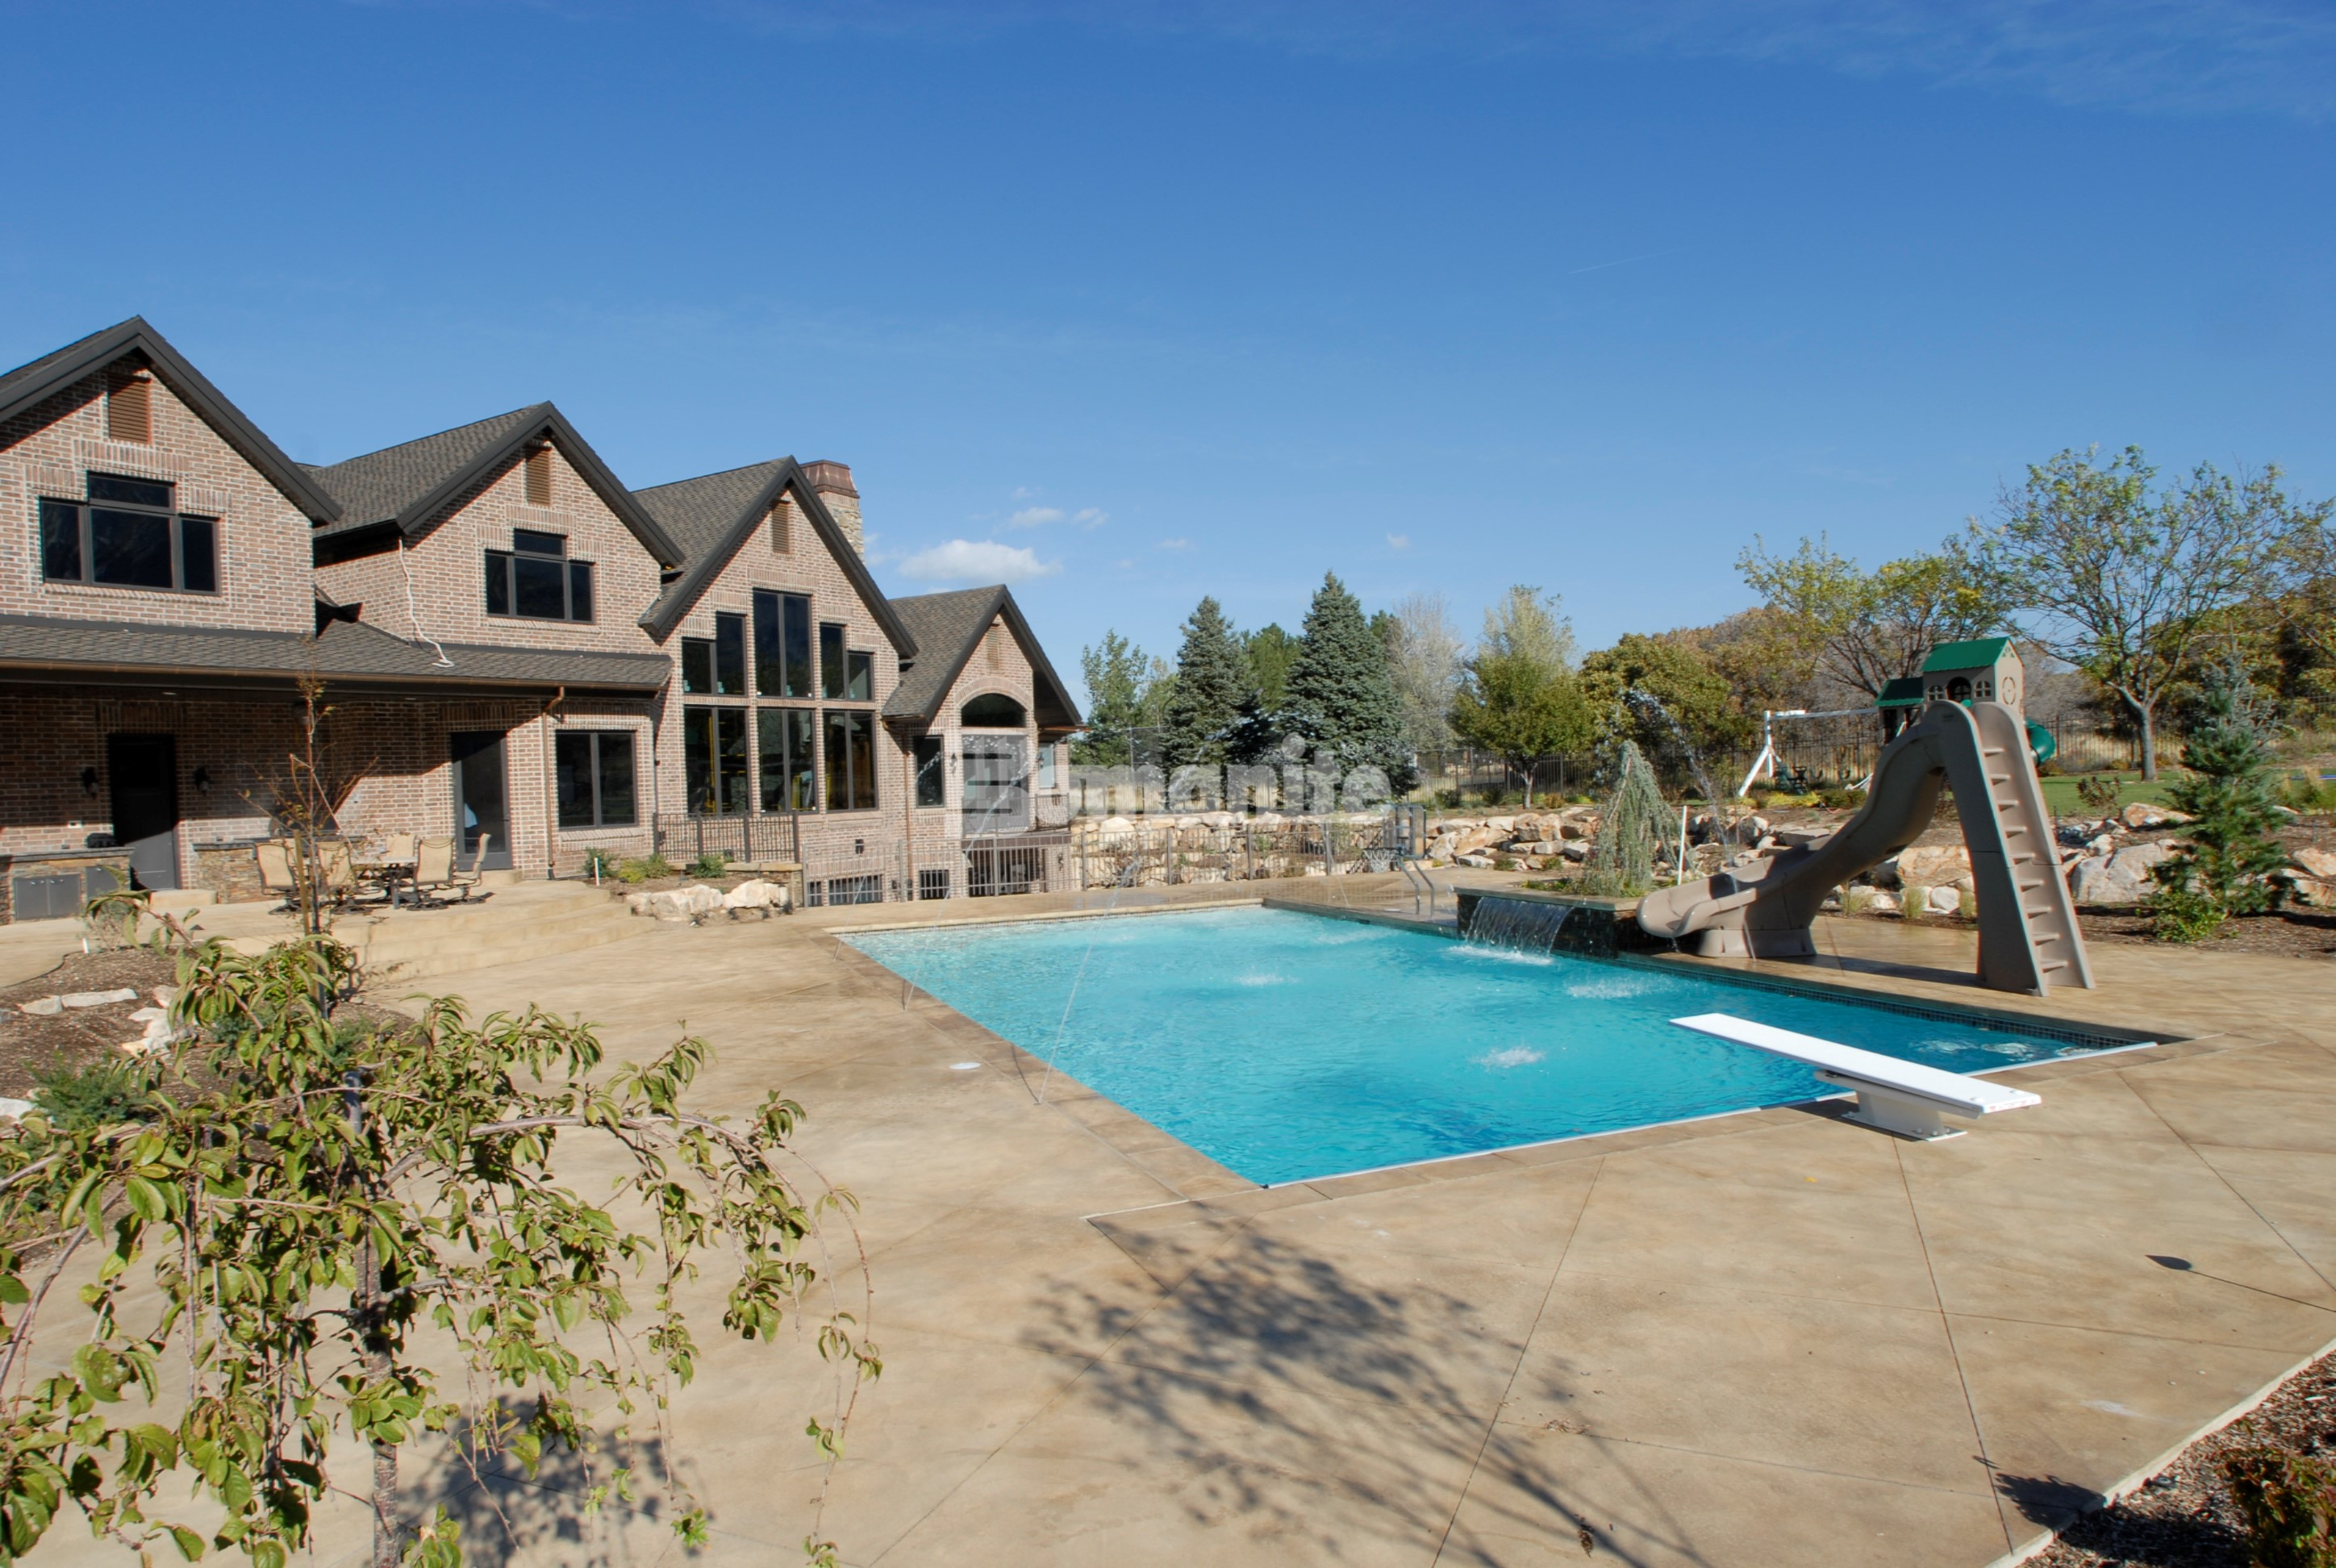 bomanite imprinted concrete is installed to create a utah nature inspired backyard bomanite